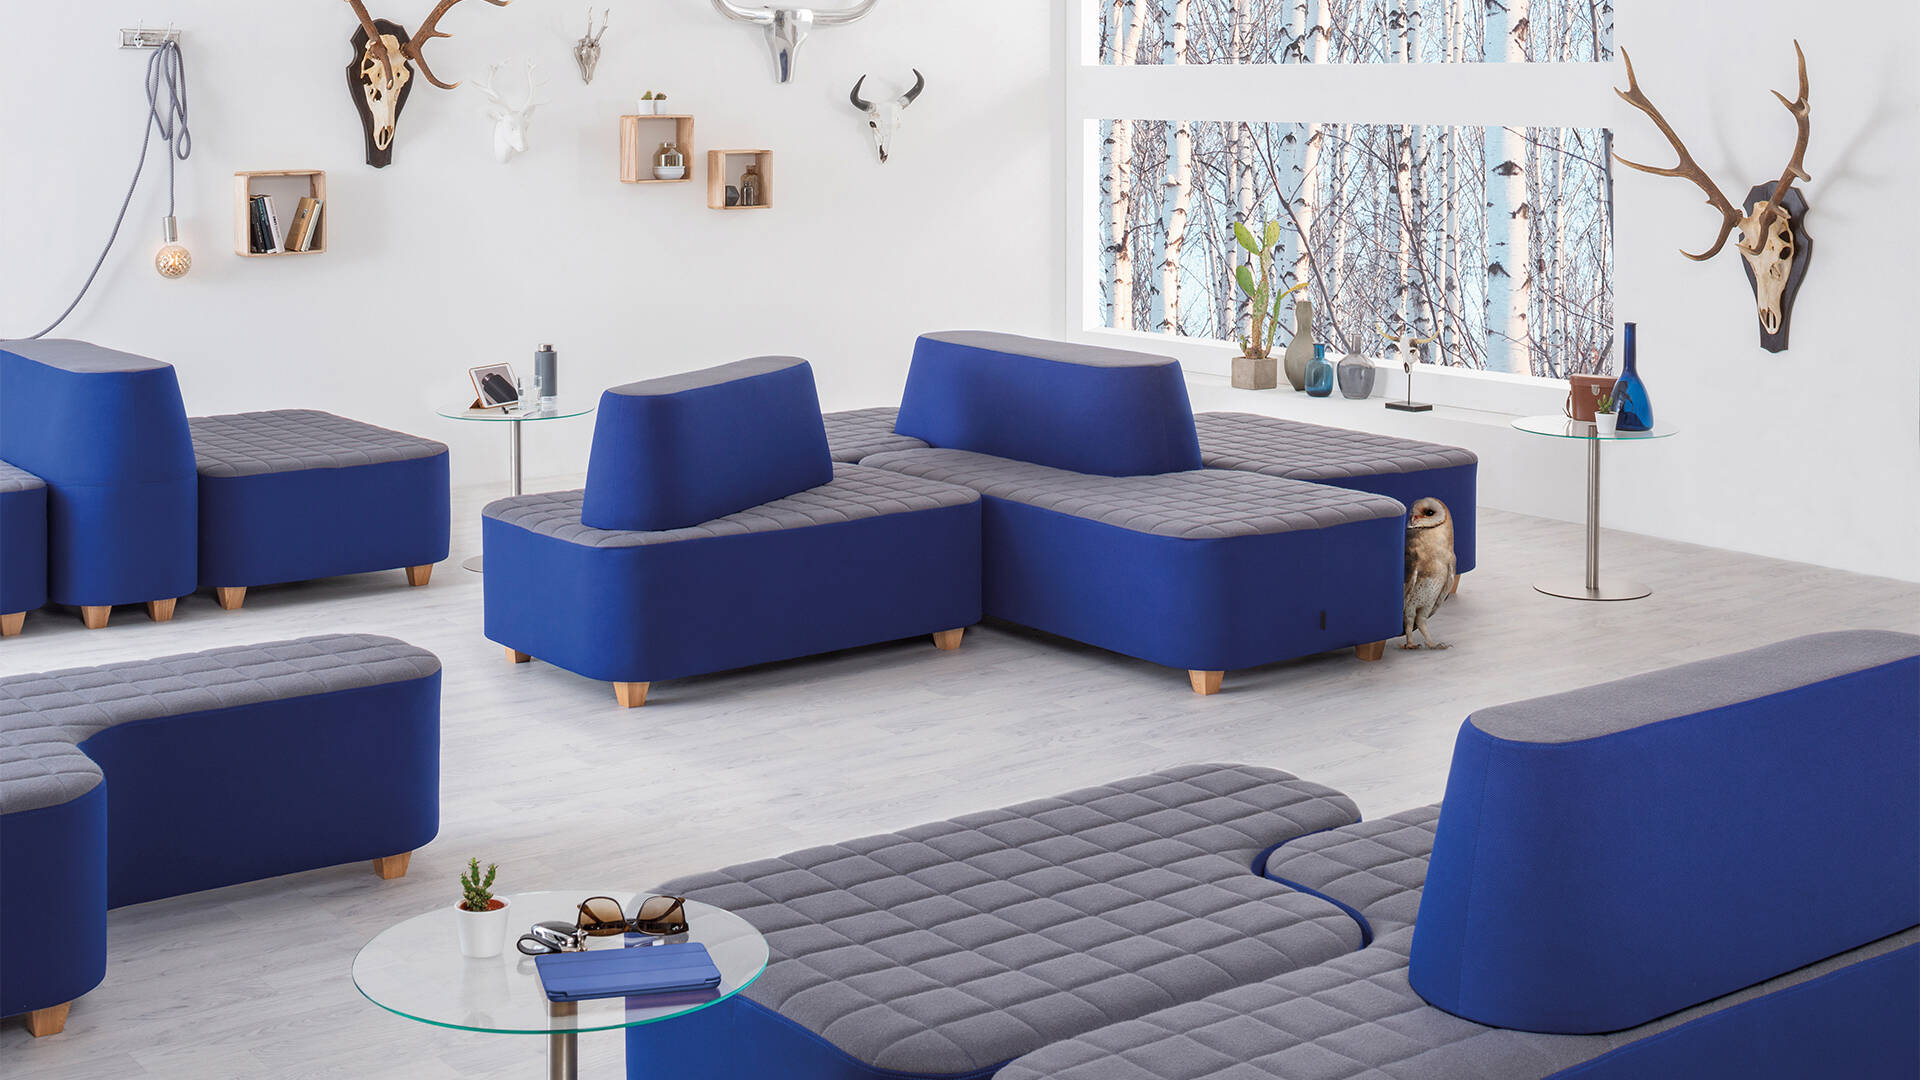 FlexFive – modular lounge and seating landscape made by SMV / <i>FlexFive – modulare Lounge von SMV</i>